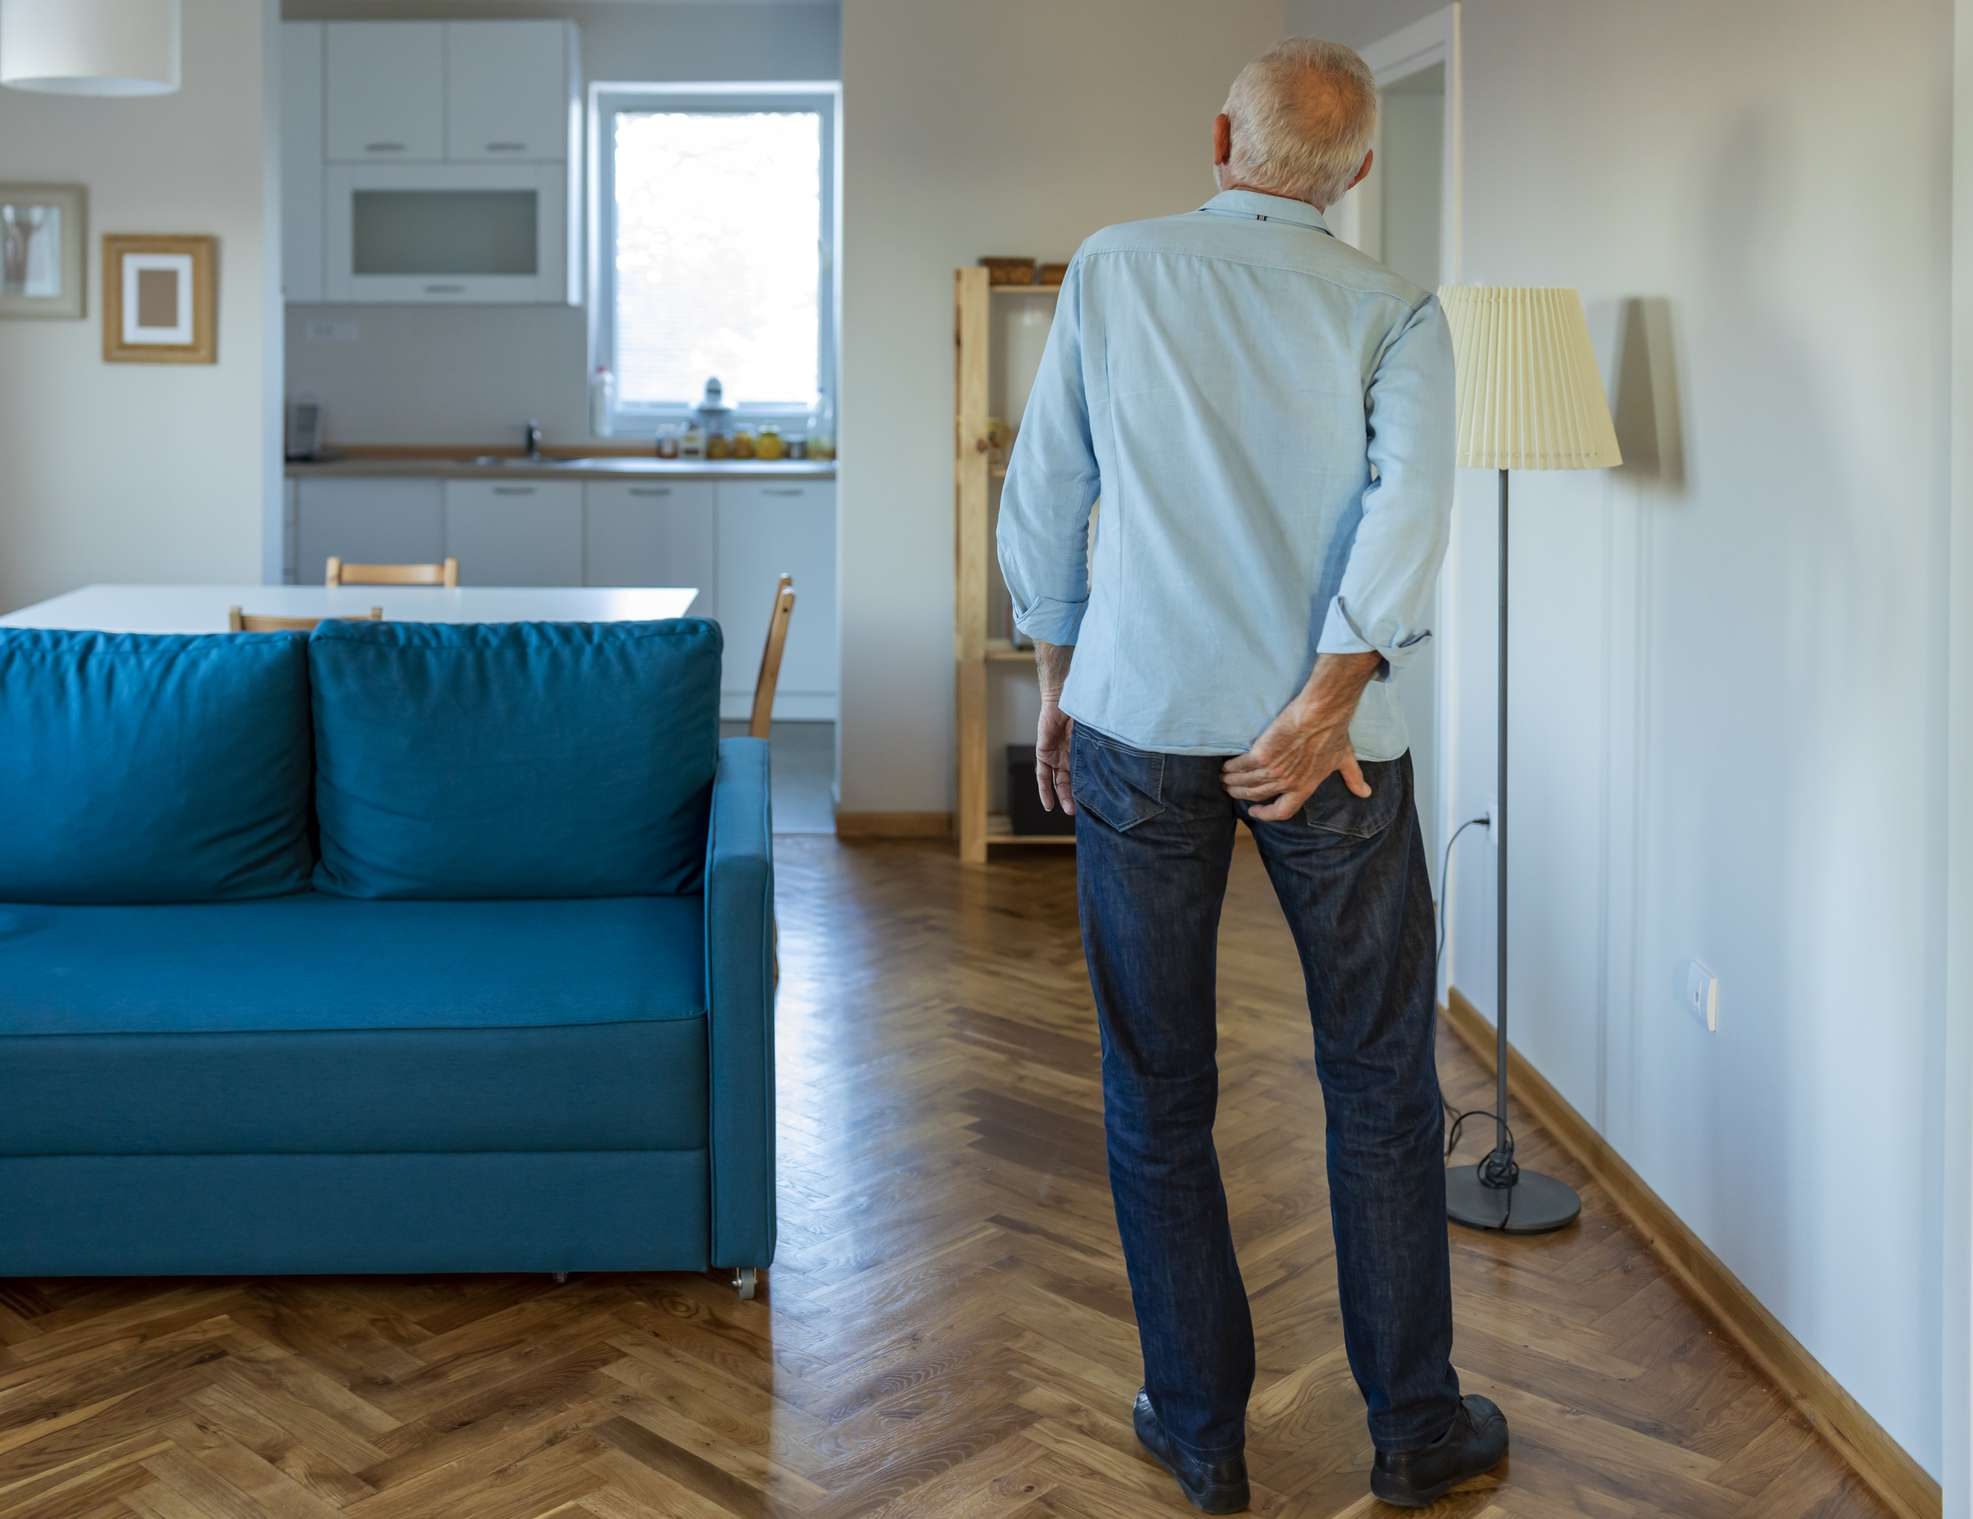 Man with irritated backside walking in his apartment